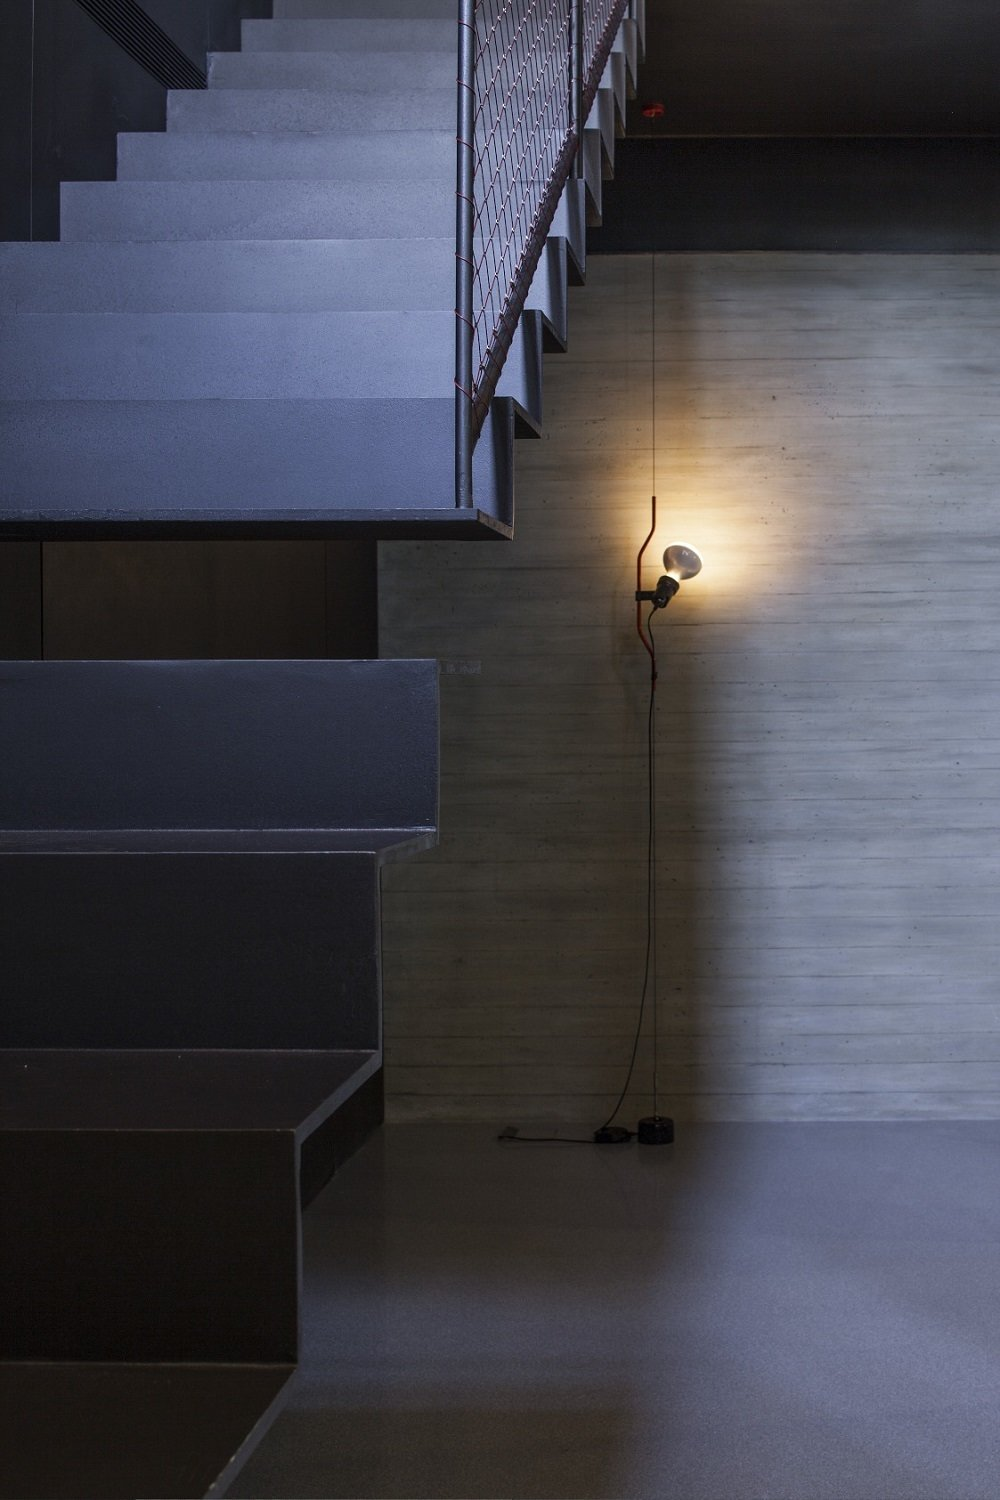 Pitsou Kedem's unique twist in the new basement is a two-part metal staircase with a gap in the middle. A slim Parentesi Floor Lamp illuminates the space. 190+ Best Modern Staircase Ideas by Dwell